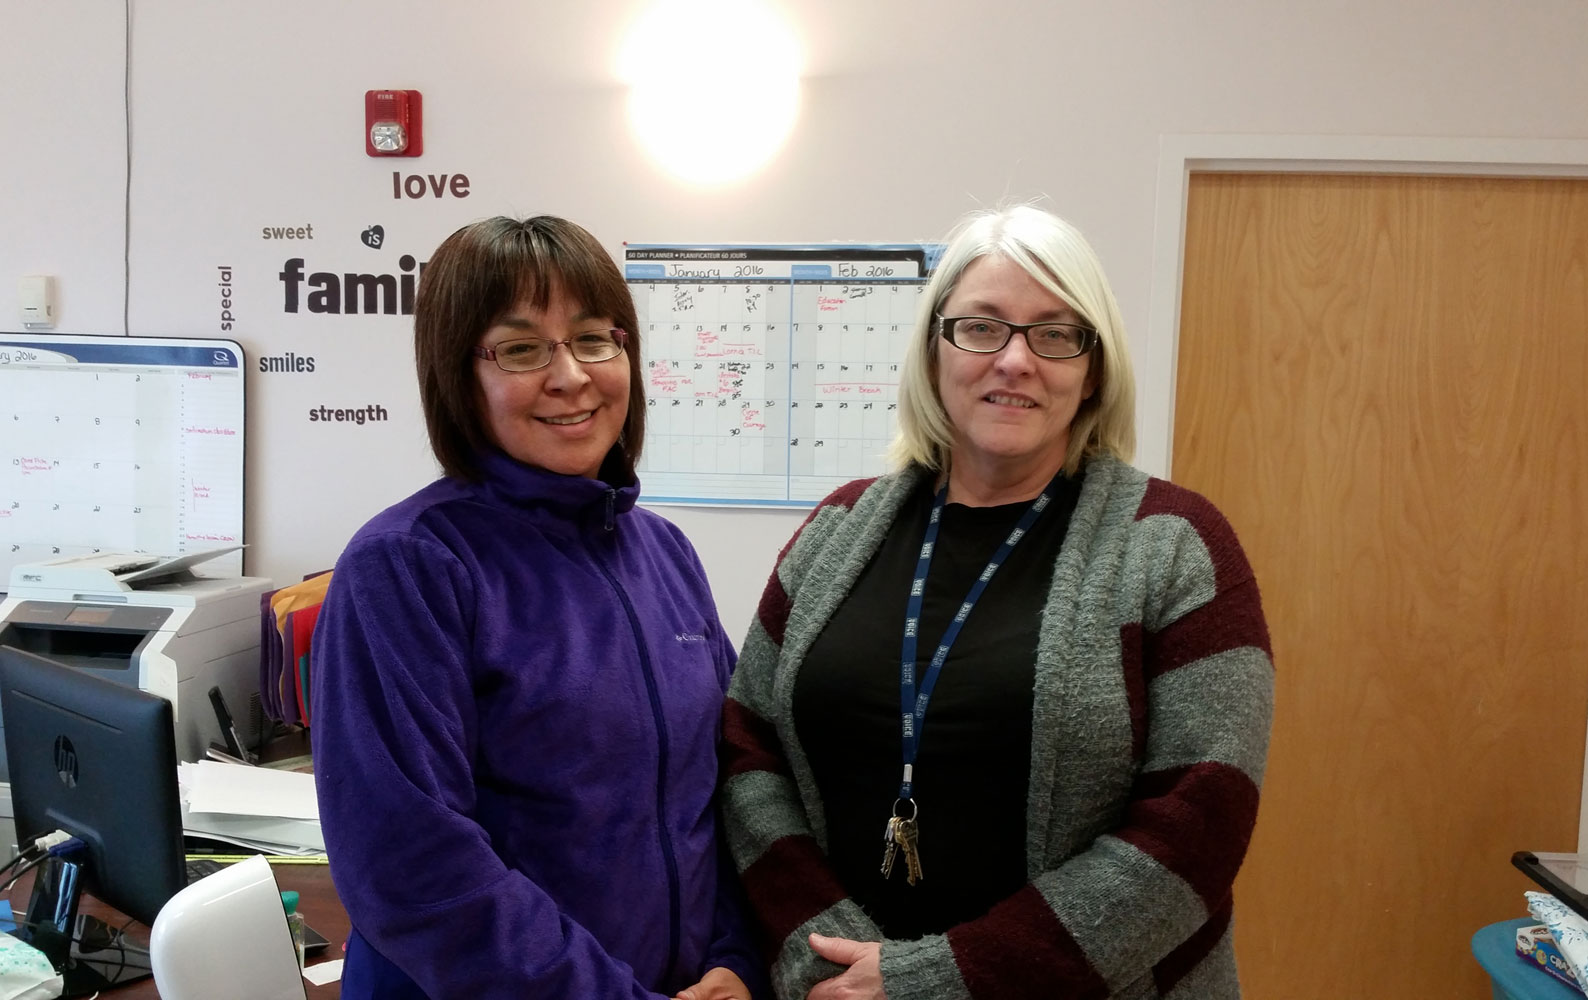 Georgina Jolibois and Lorna Lemaigre at the Friendship Centre